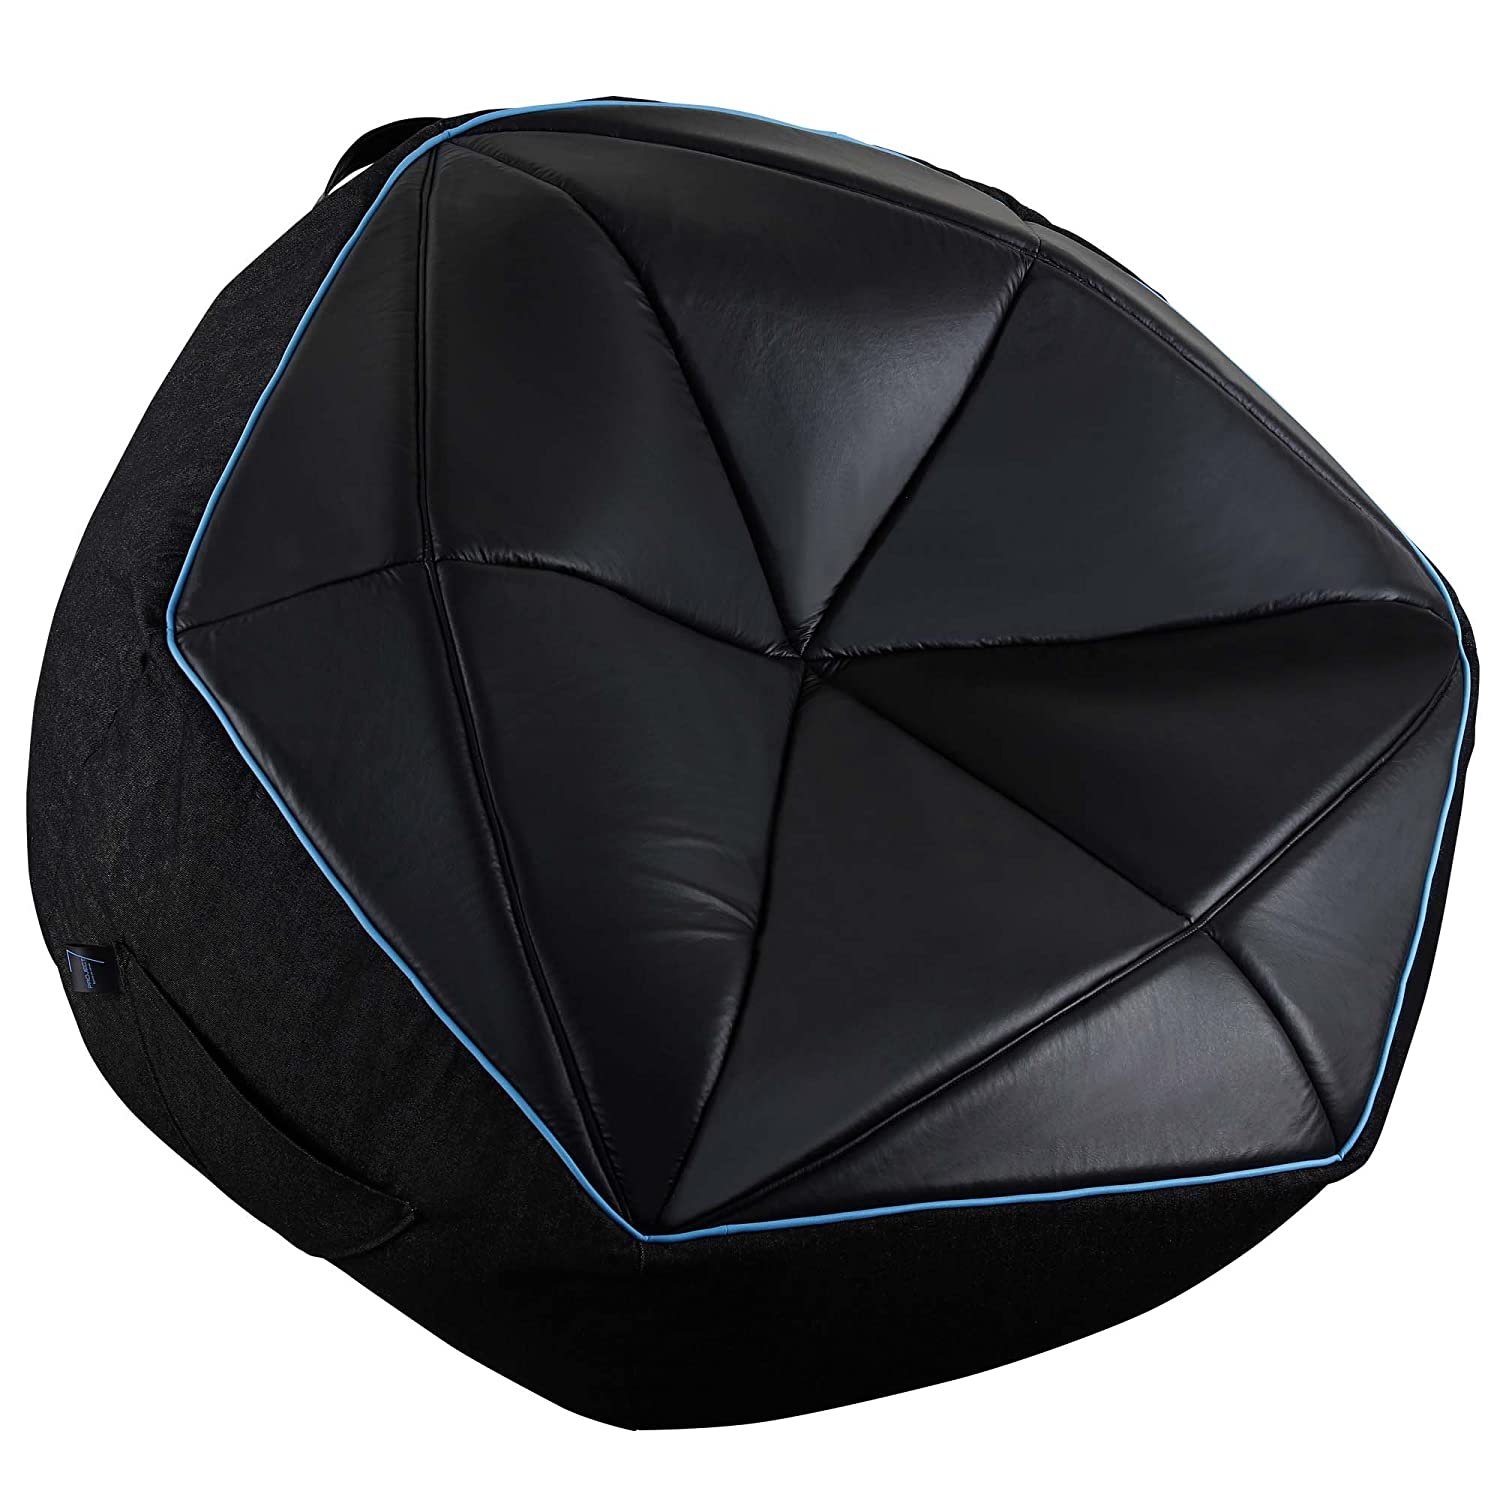 Aerocool P7BB1 Bean Bag Puff Gaming Black XL, Tessuto, Nero, X-Large